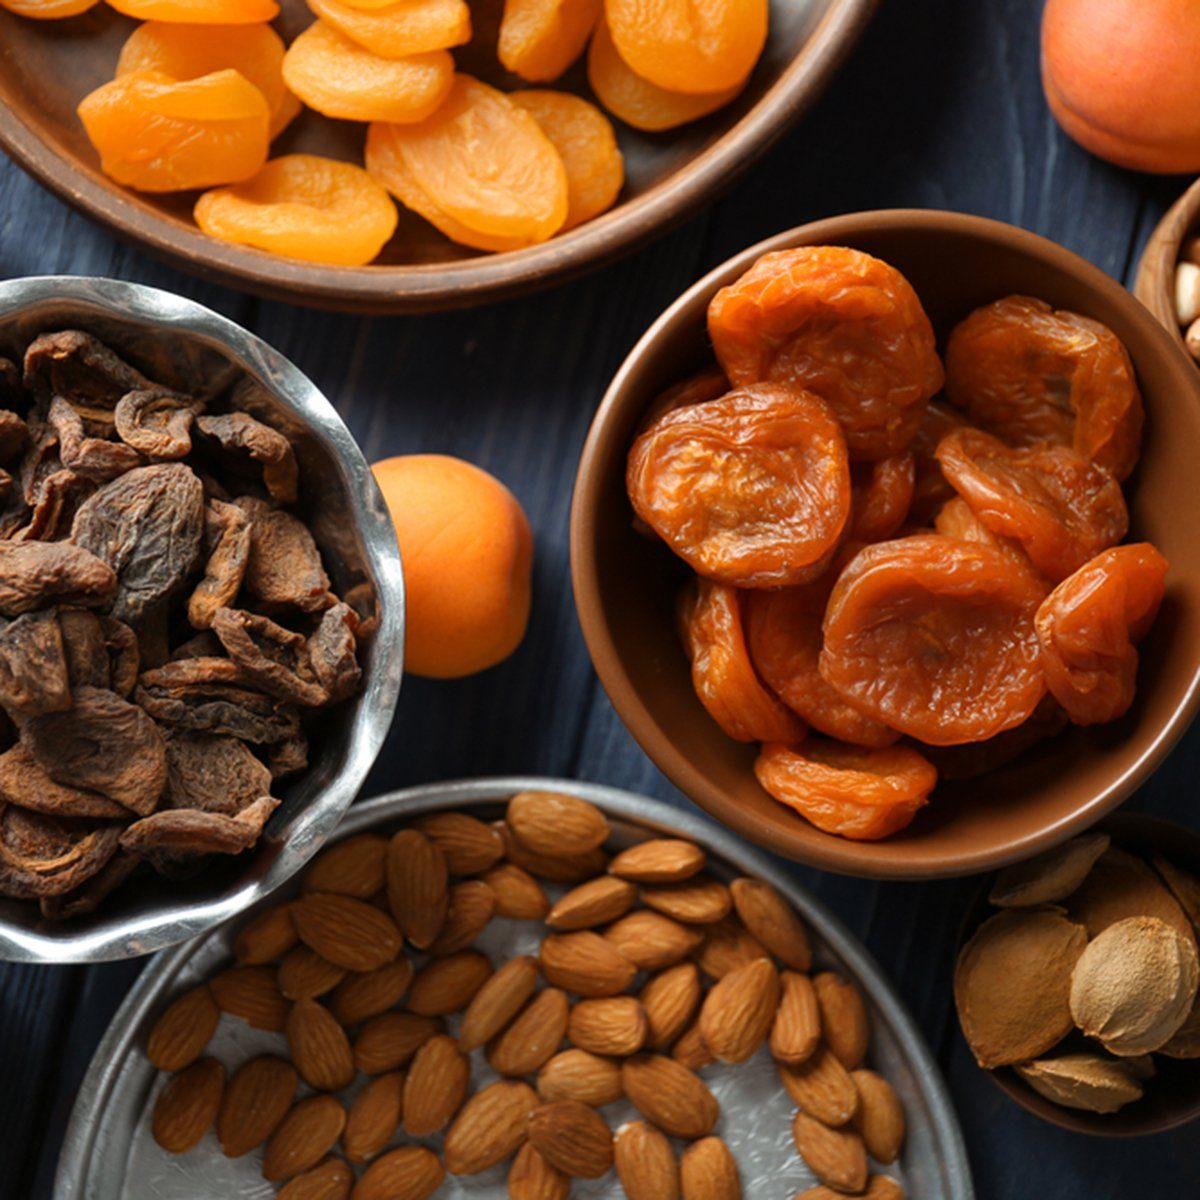 Dried apricots and nuts in different dishes on wooden table; Shutterstock ID 720334081; Job (TFH, TOH, RD, BNB, CWM, CM): TOH